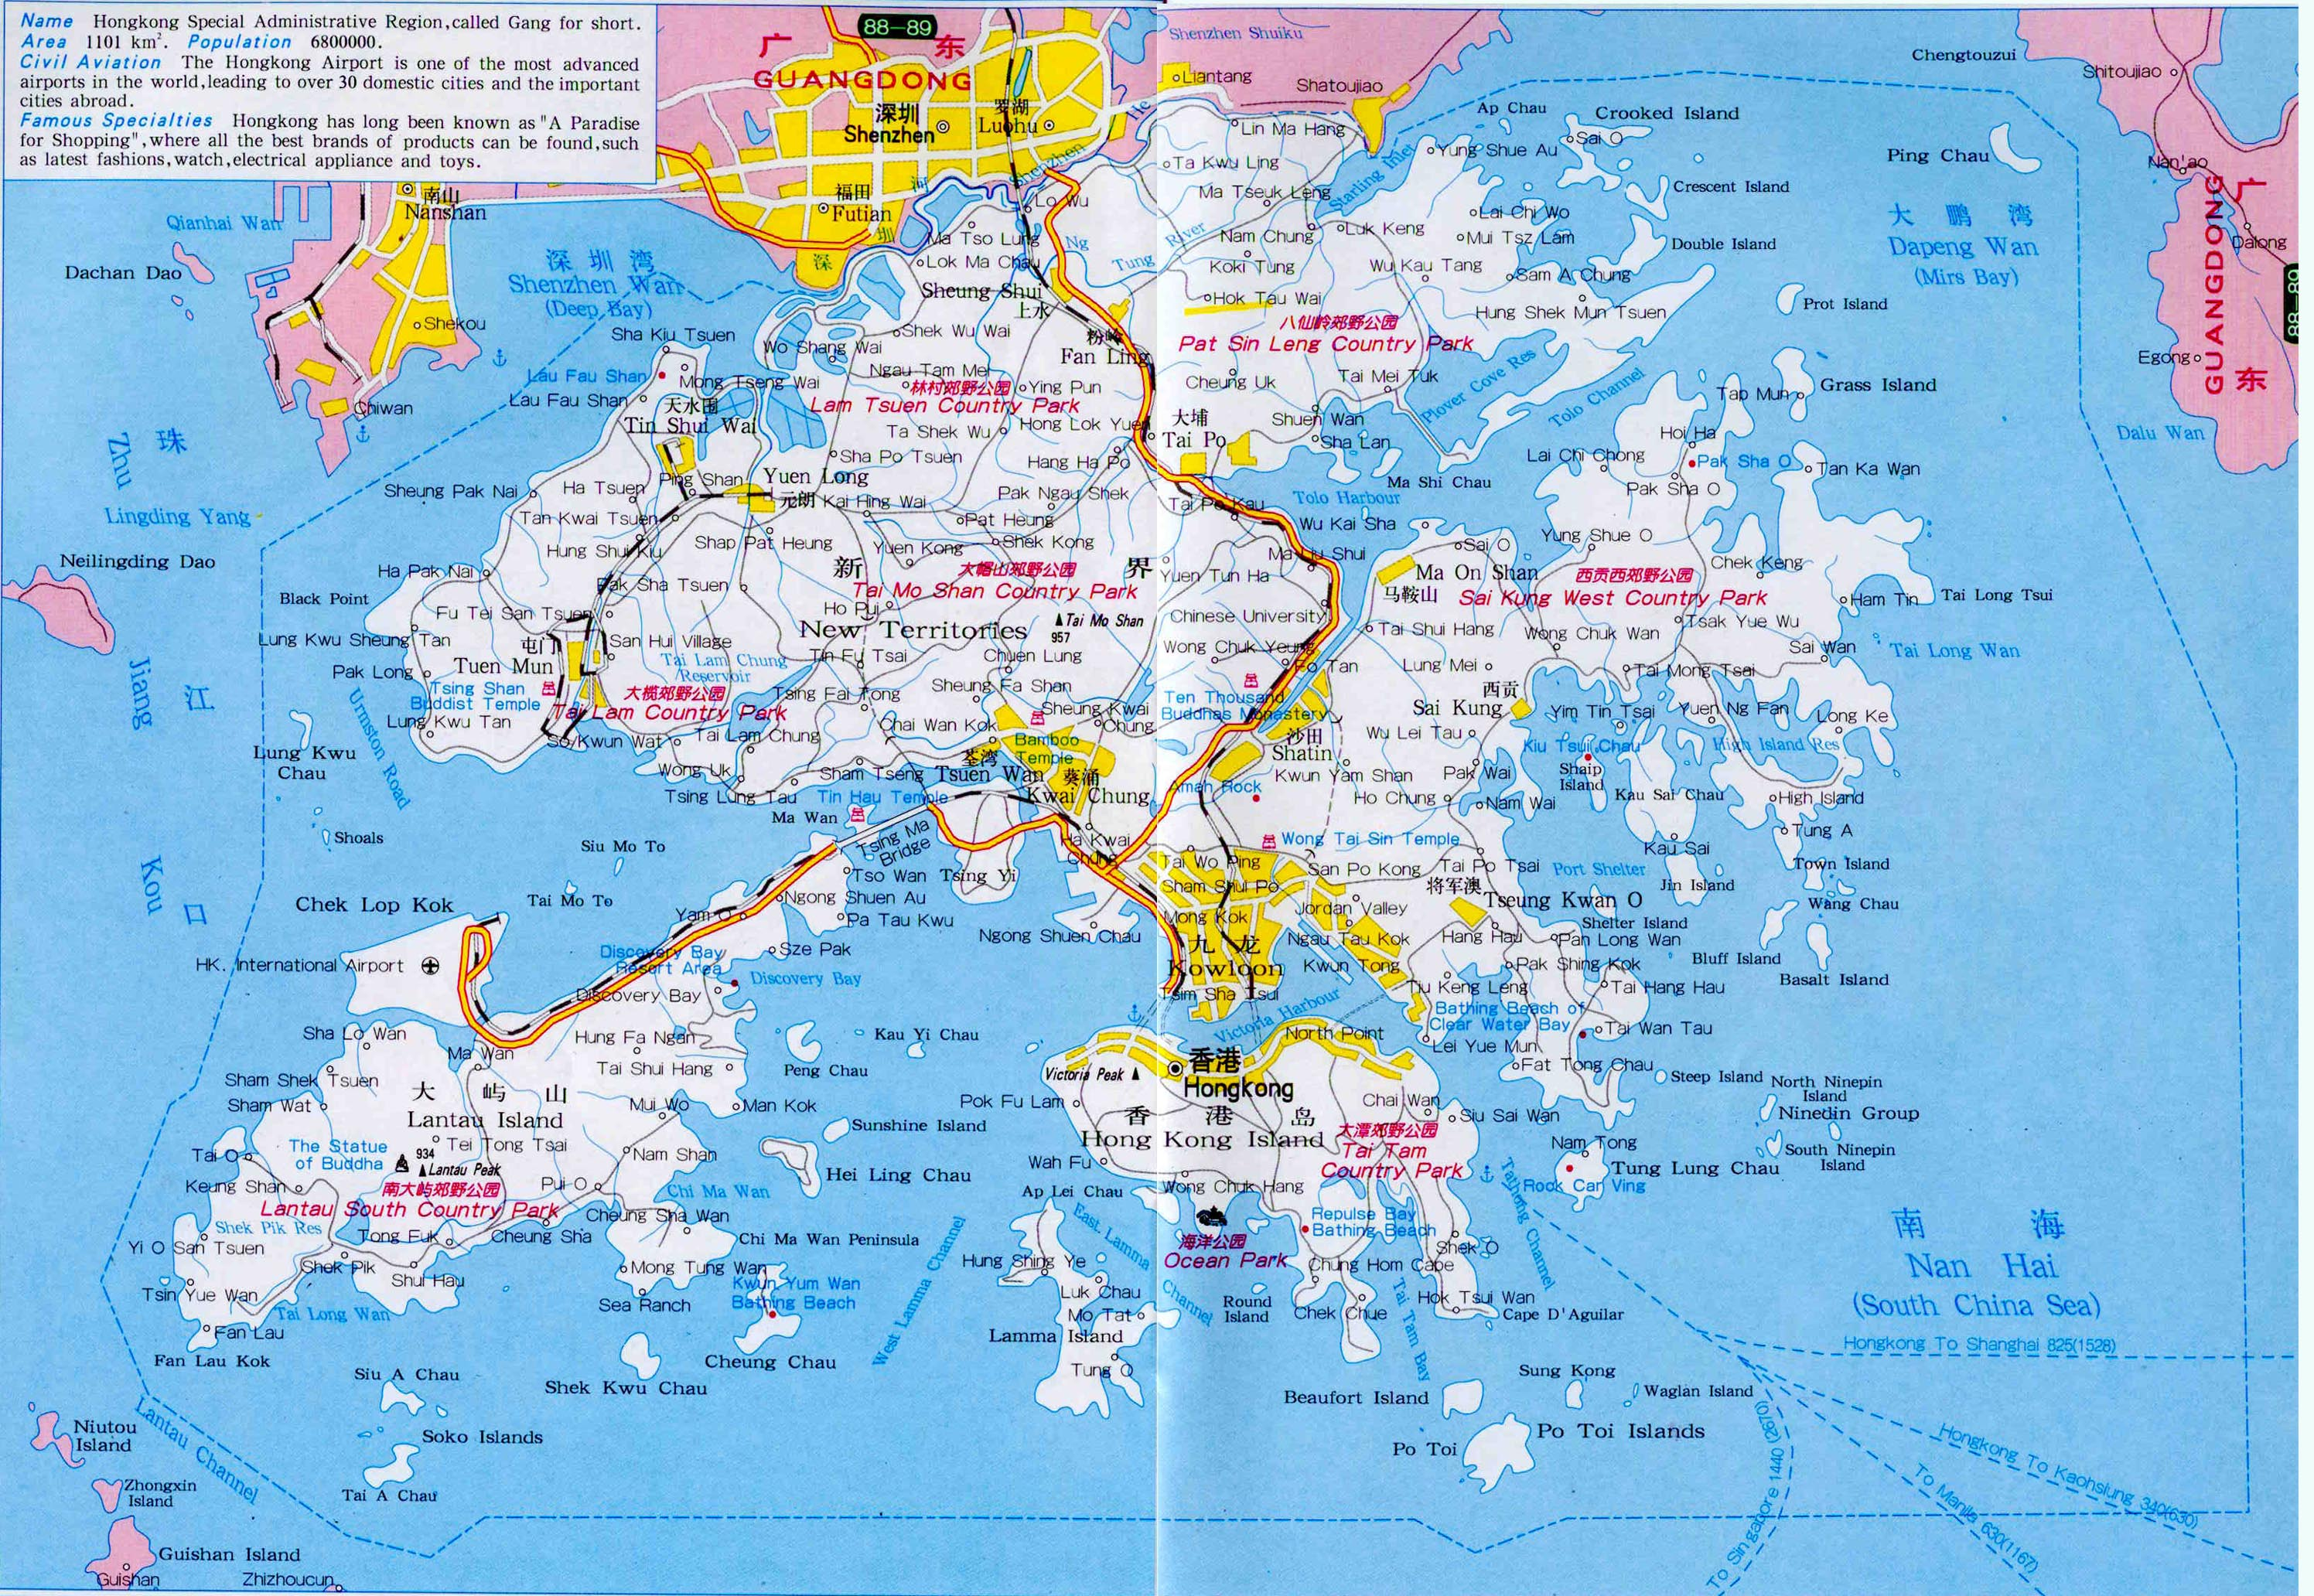 Disneyland Locations World Map.Hong Kong Disneyland Park Map Hong Kong Maps China Tour Advisors